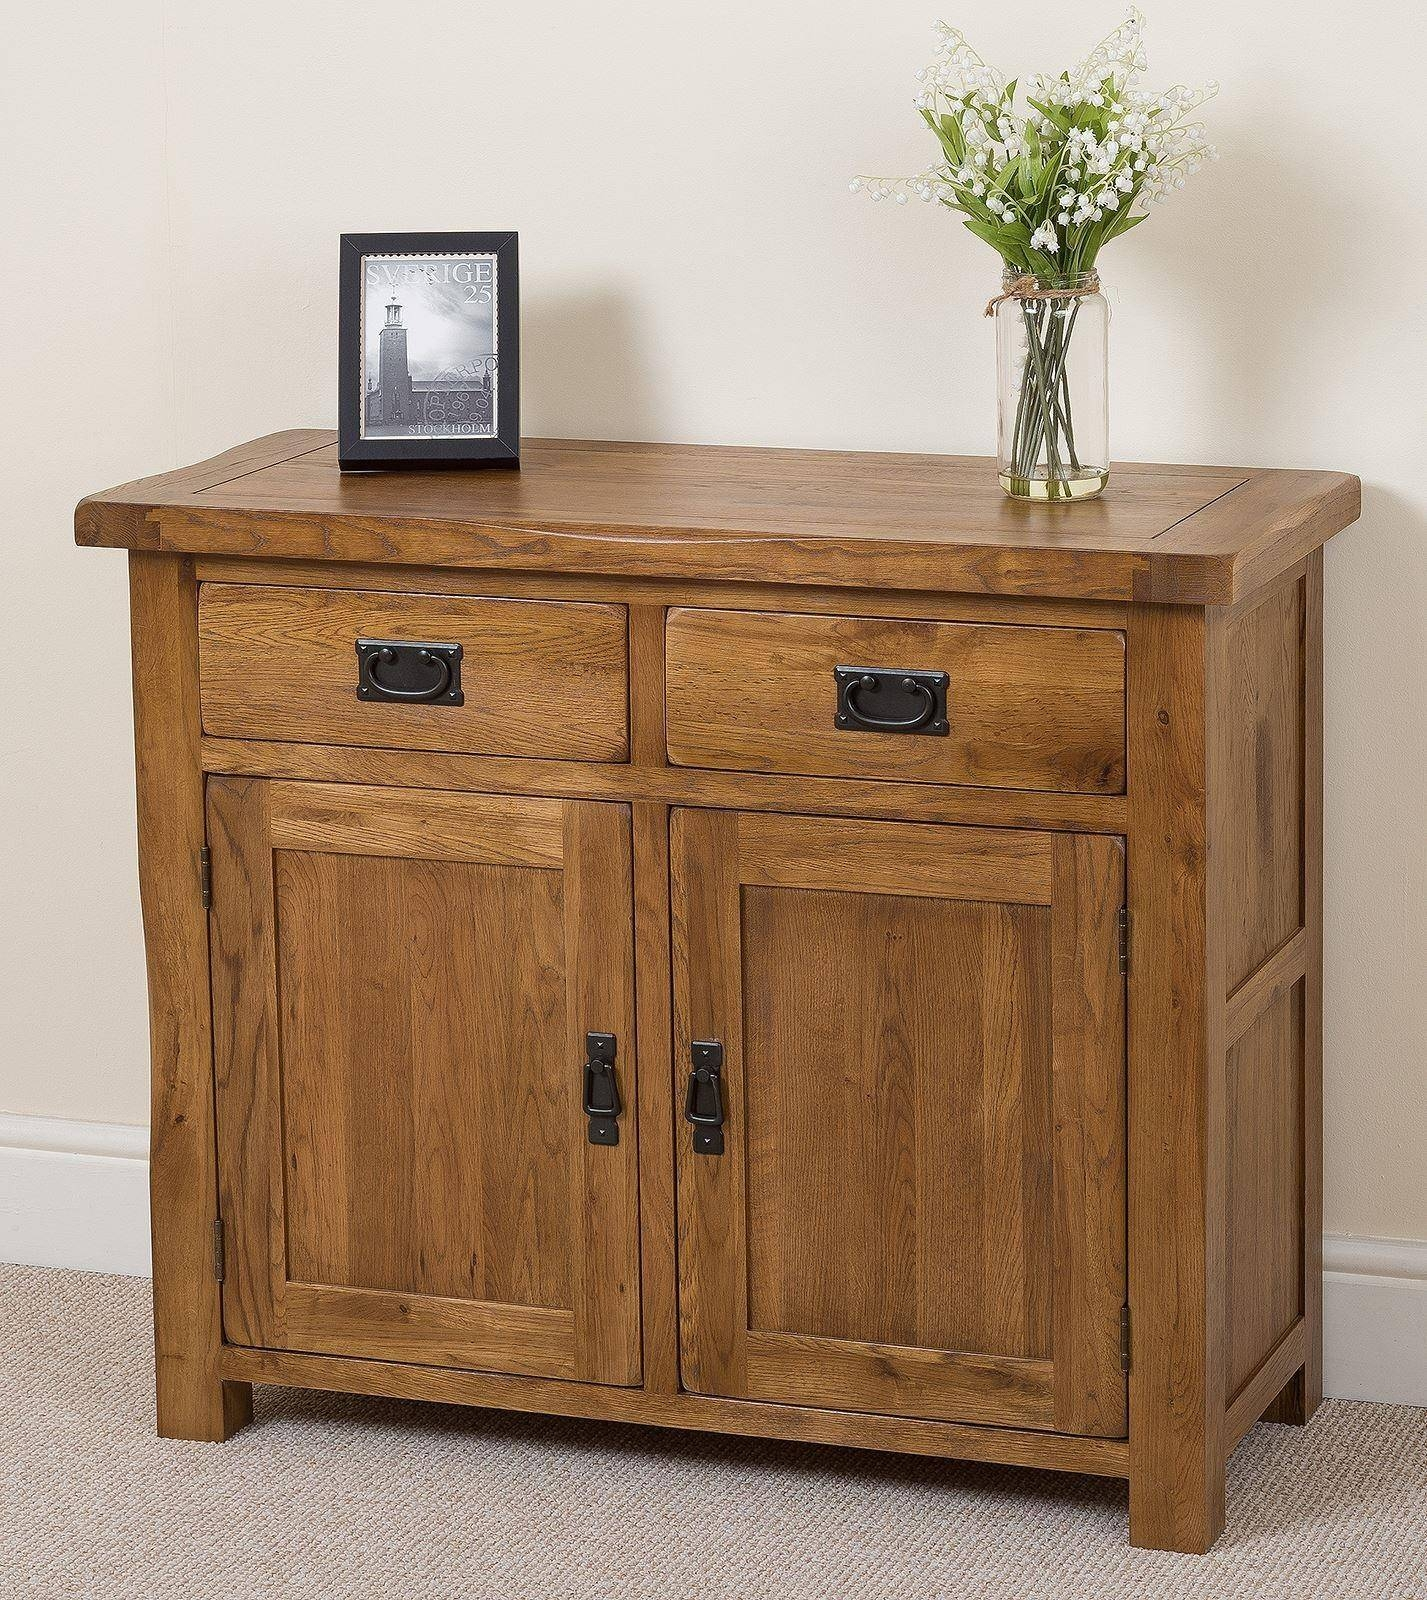 Cotswold Rustic Small Oak Sideboard | Free Uk Delivery Inside Most Up To Date Solid Oak Sideboards (#5 of 15)